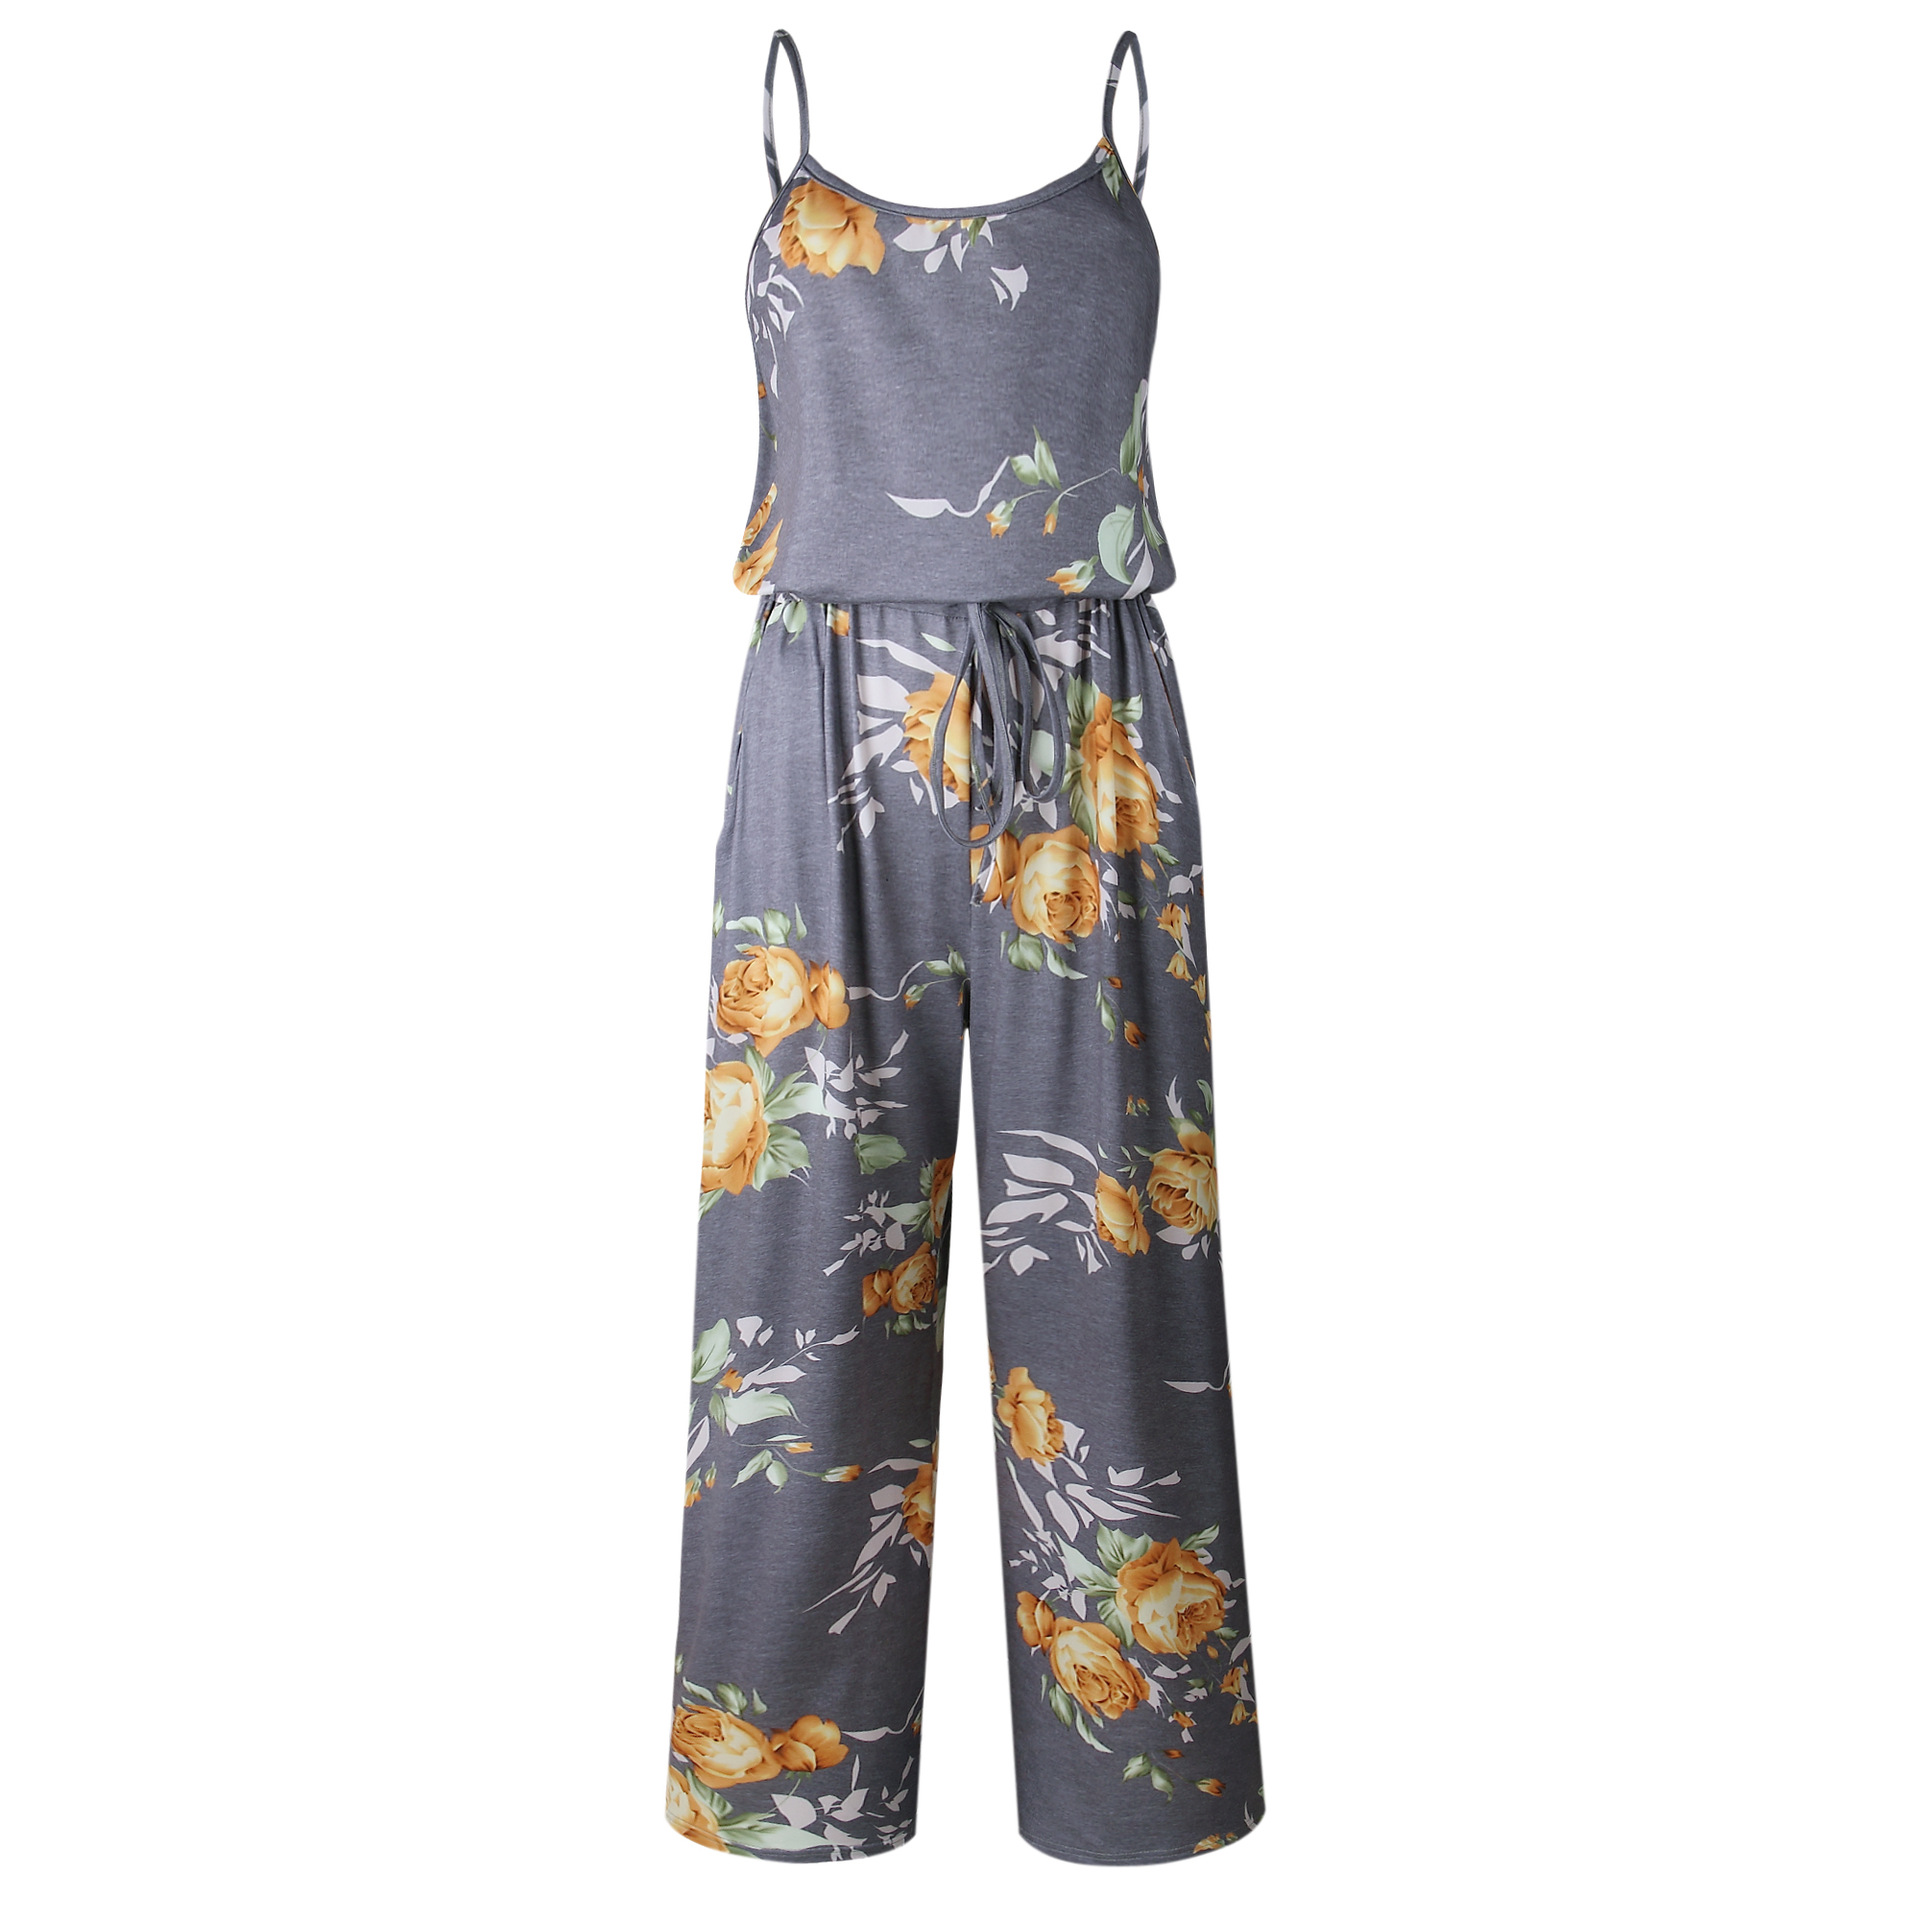 aba69b531061 Spaghetti Strap Jumpsuit Women 2018 Summer Long Pants Floral Print Rompers  Beach Casual Jumpsuits Sleeveless Sashes Playsuits